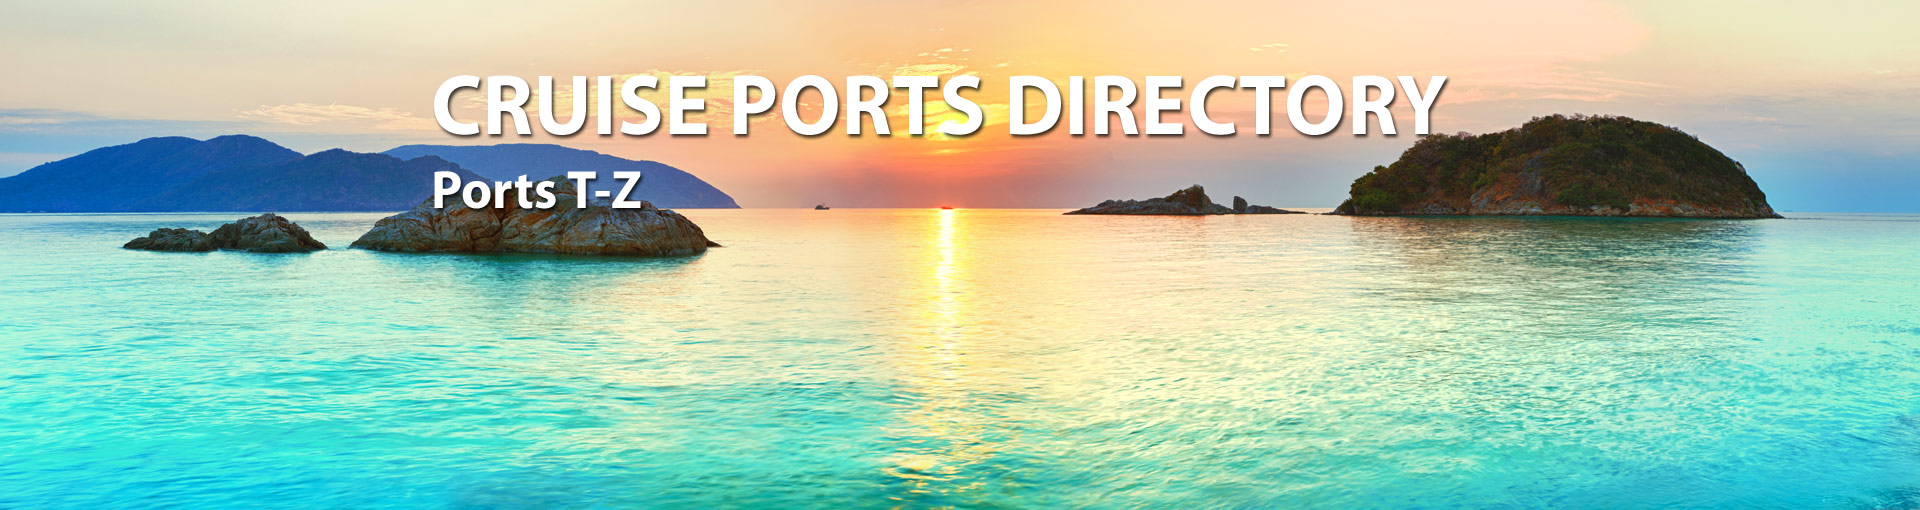 Cruise Ports Directory, Page 5